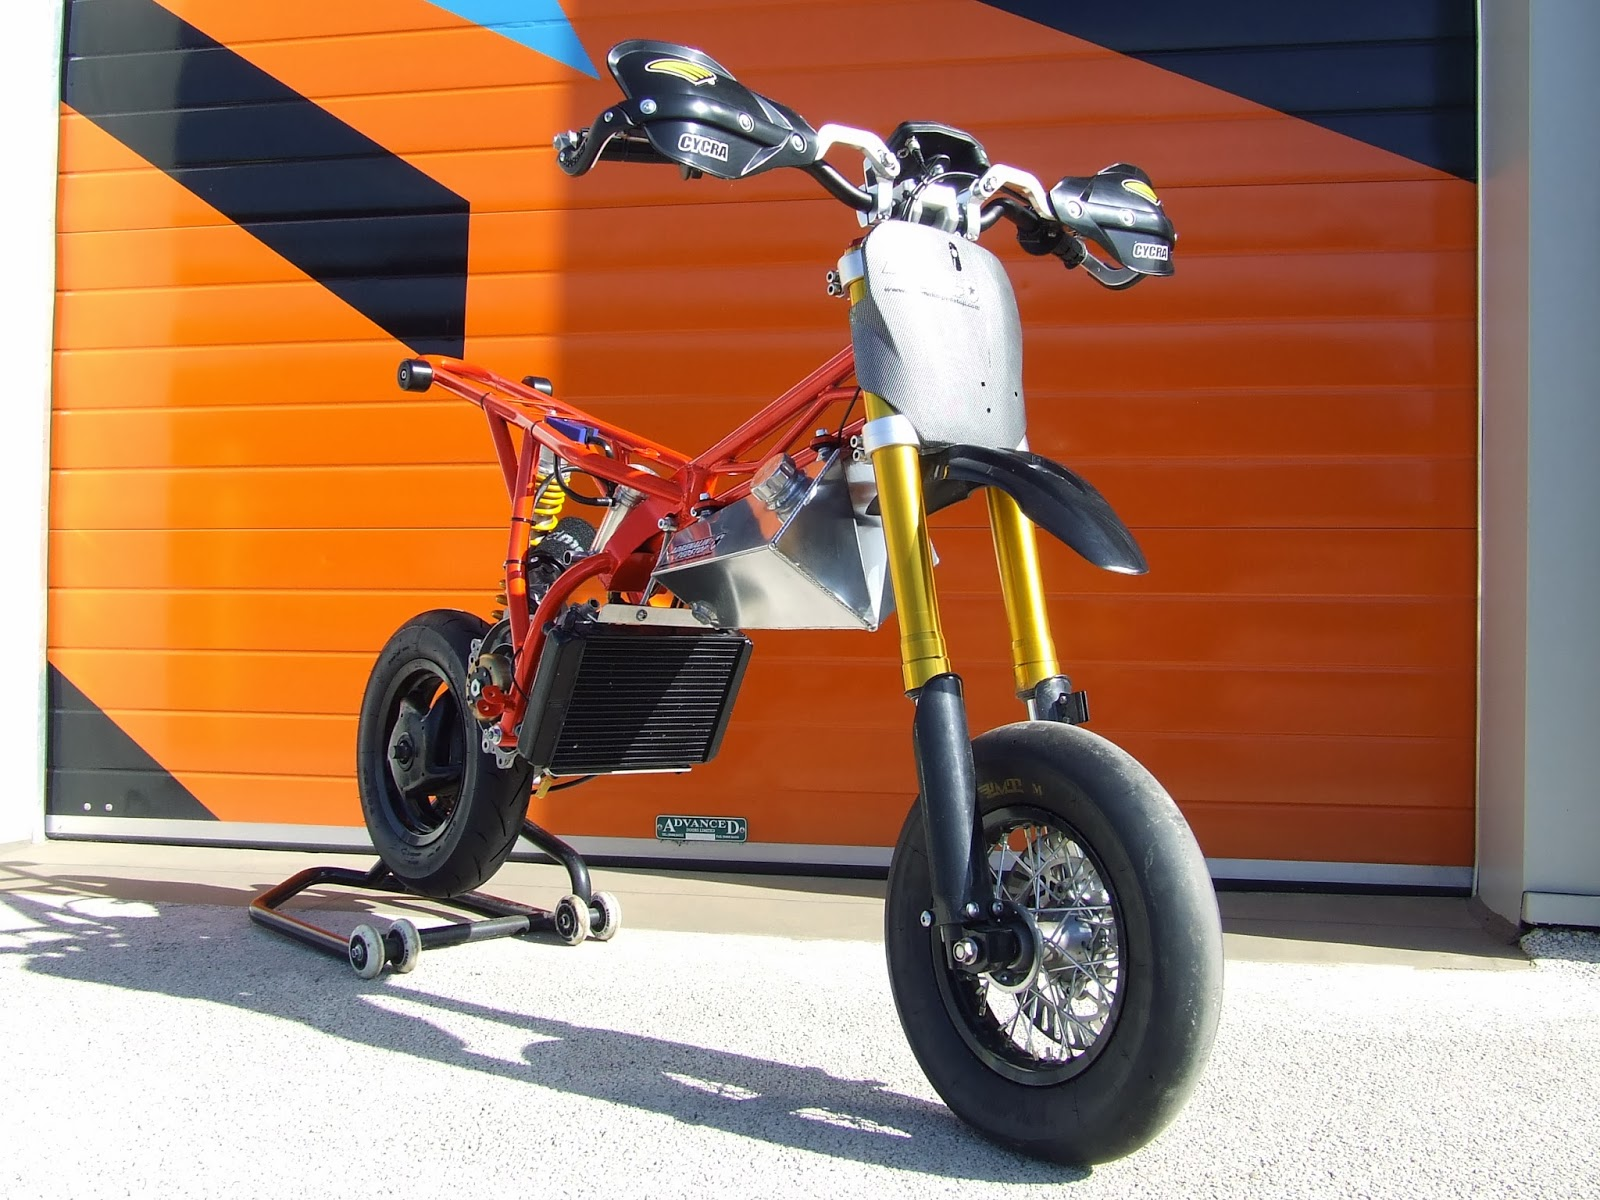 adrenalin scooter performance parts polini 94cc automatic pit bike from adrenalin pedstop. Black Bedroom Furniture Sets. Home Design Ideas